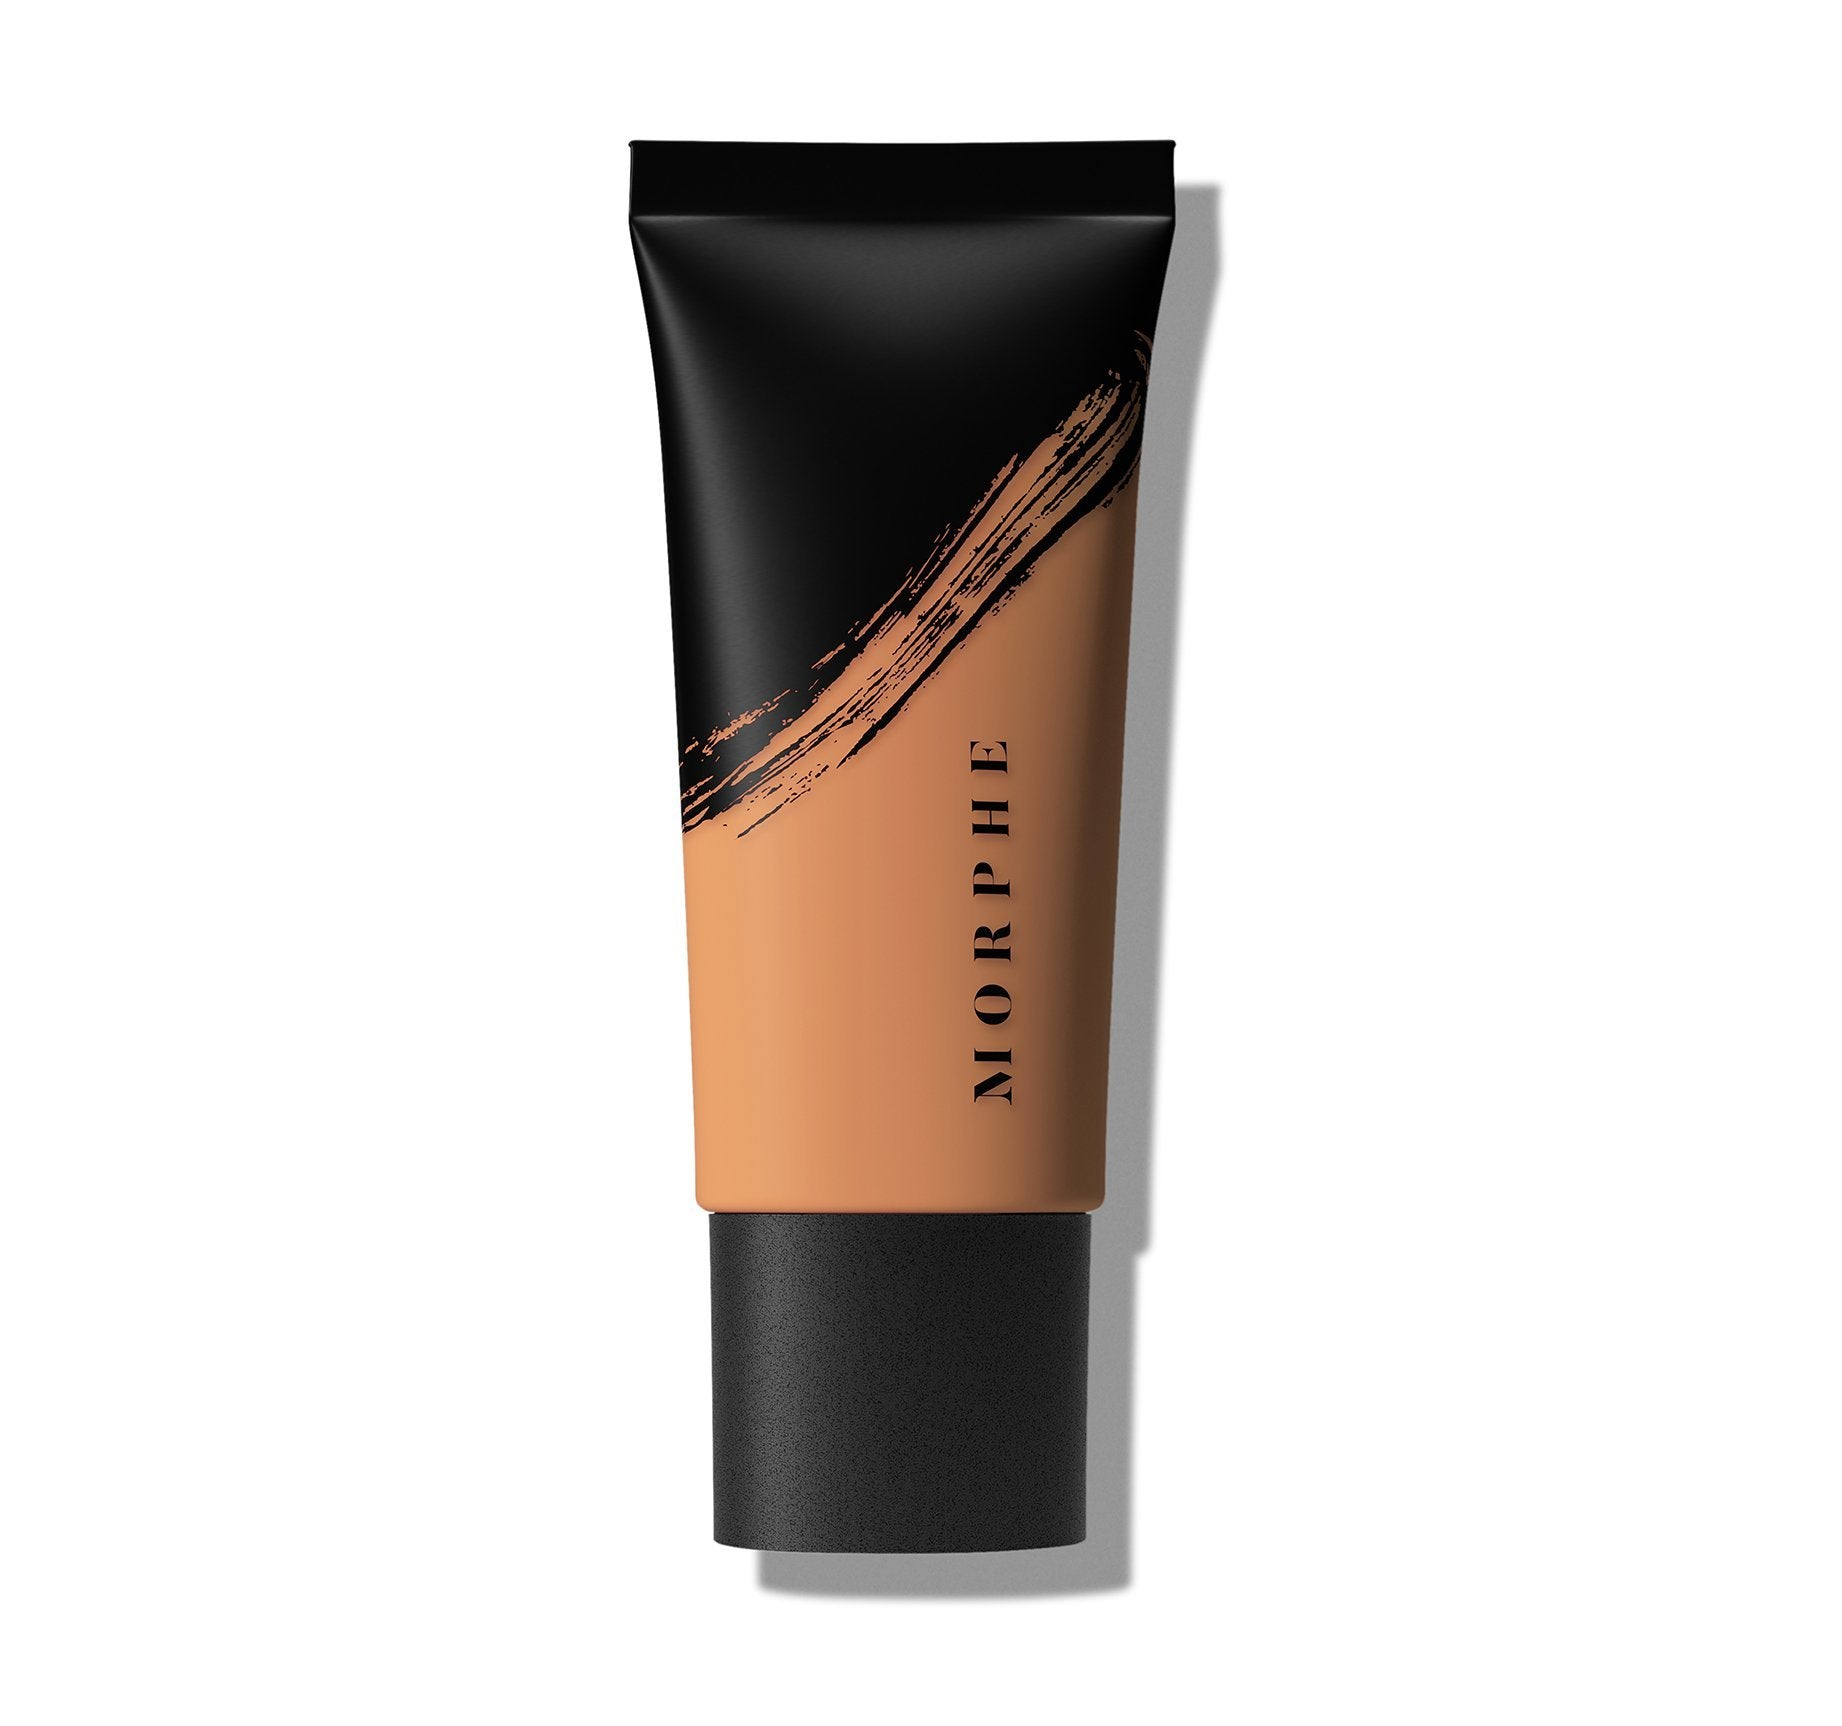 FLUIDITY FULL-COVERAGE FOUNDATION - F2.89, view larger image